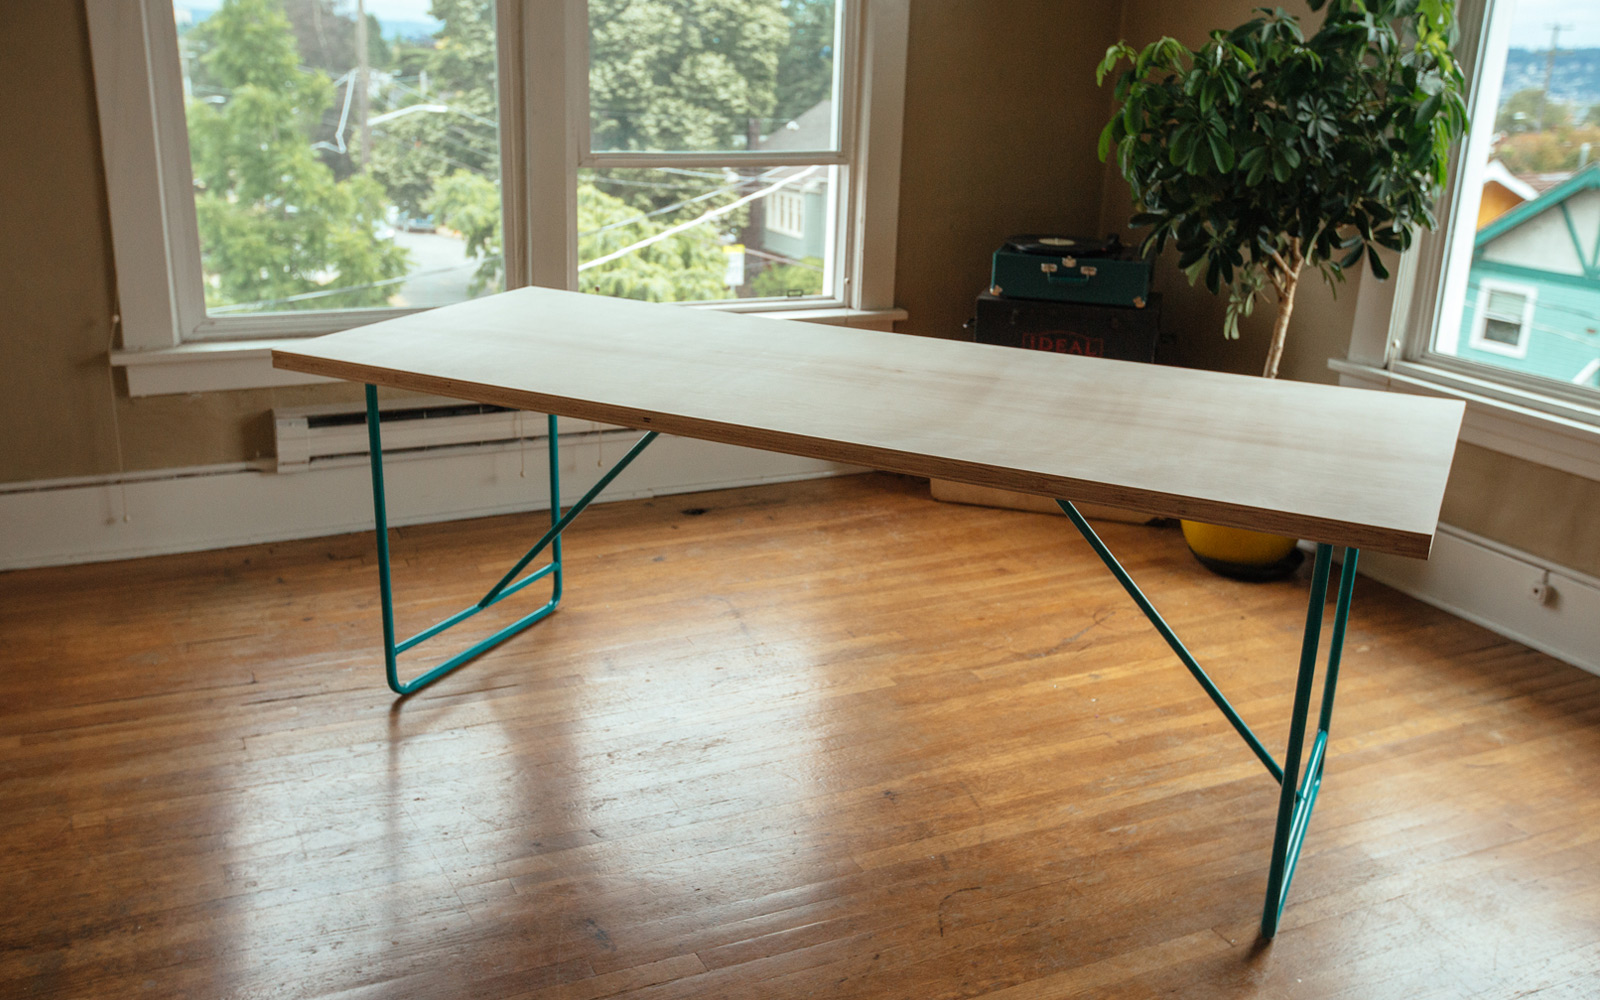 How to Make a DIY Mid Century Modern Dining Room Table | Dunn DIY